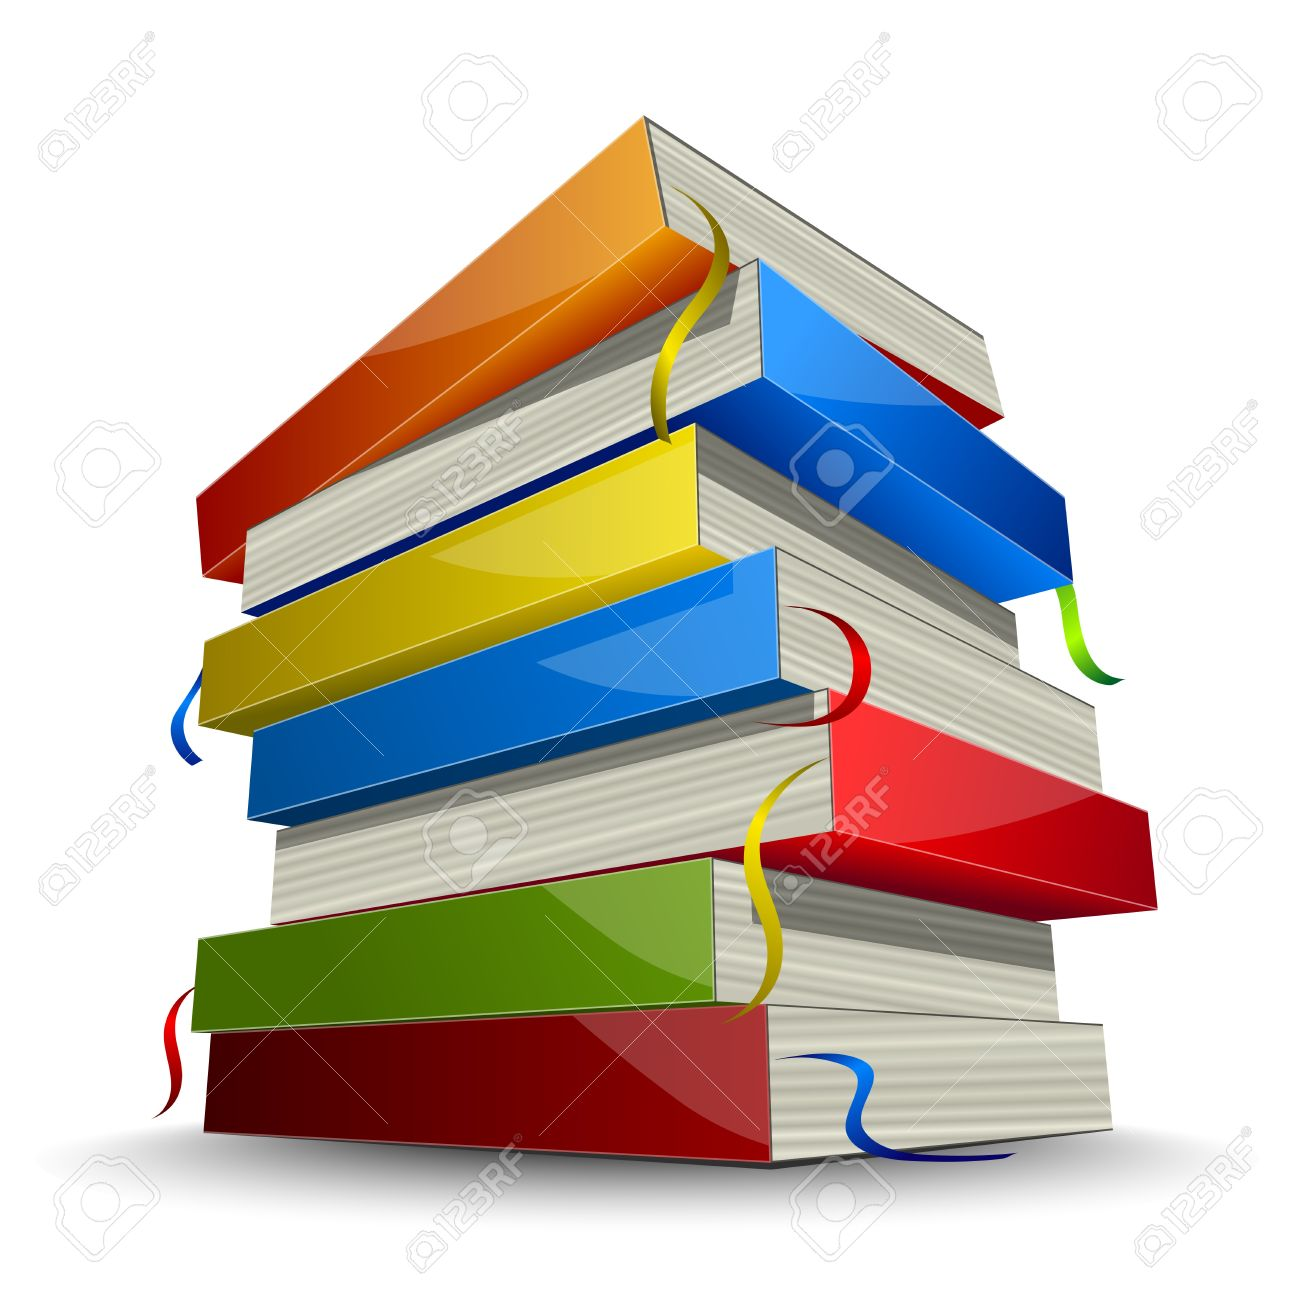 Pile Of Colored Books Royalty Free Cliparts, Vectors, And Stock ...